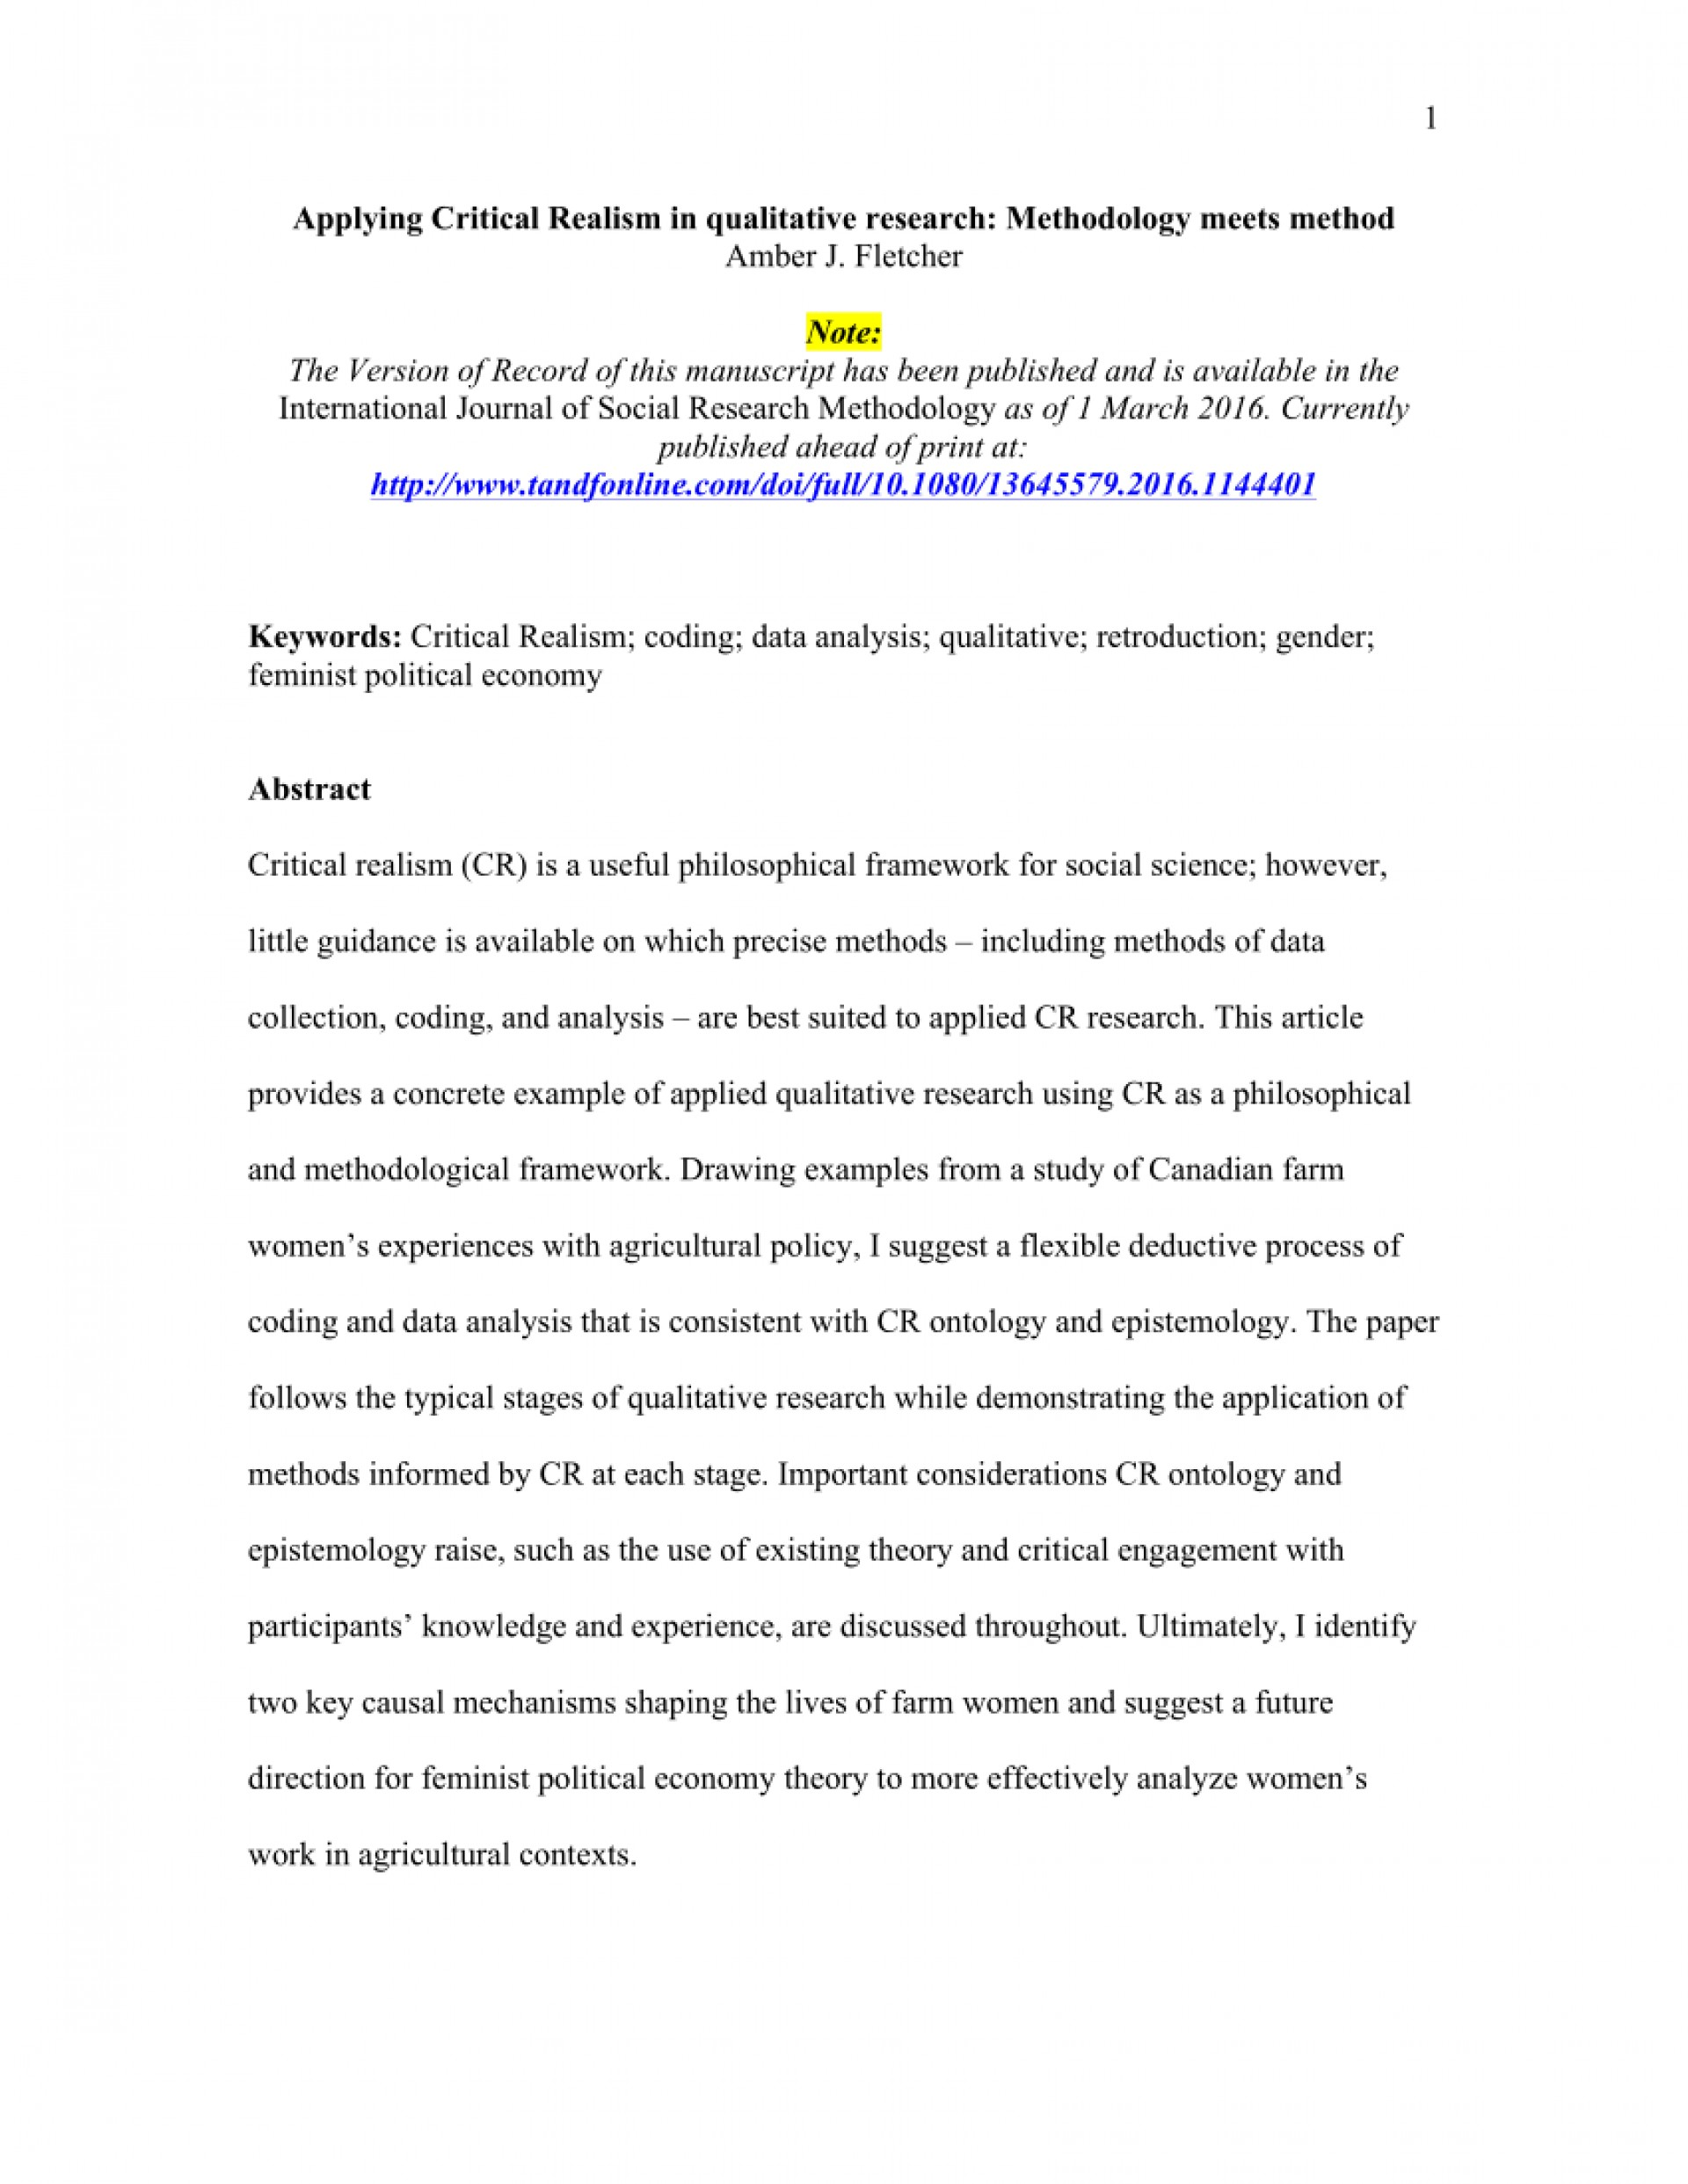 006 Research Paper Example Of Methodology Section Qualitative Dreaded Sample A 1920